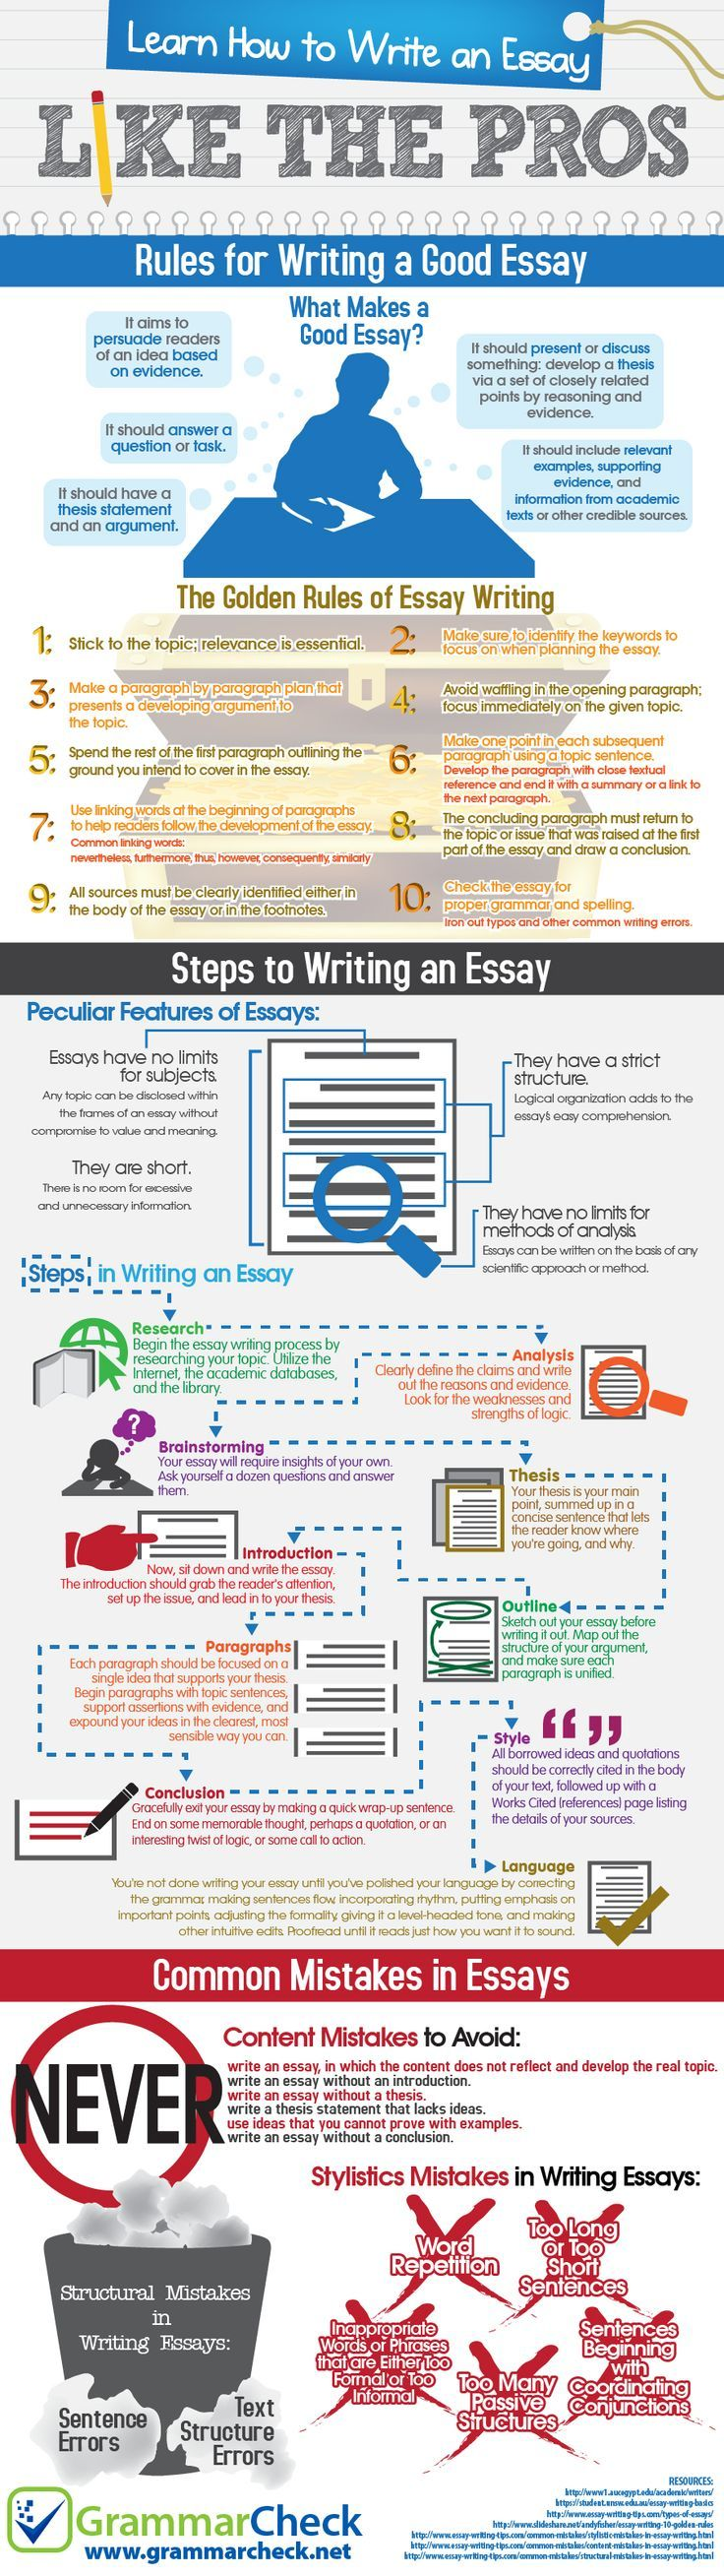 How to Write an Essay Like the Pros (Infographic) #ielts #esol http://www.uniquelanguages.com